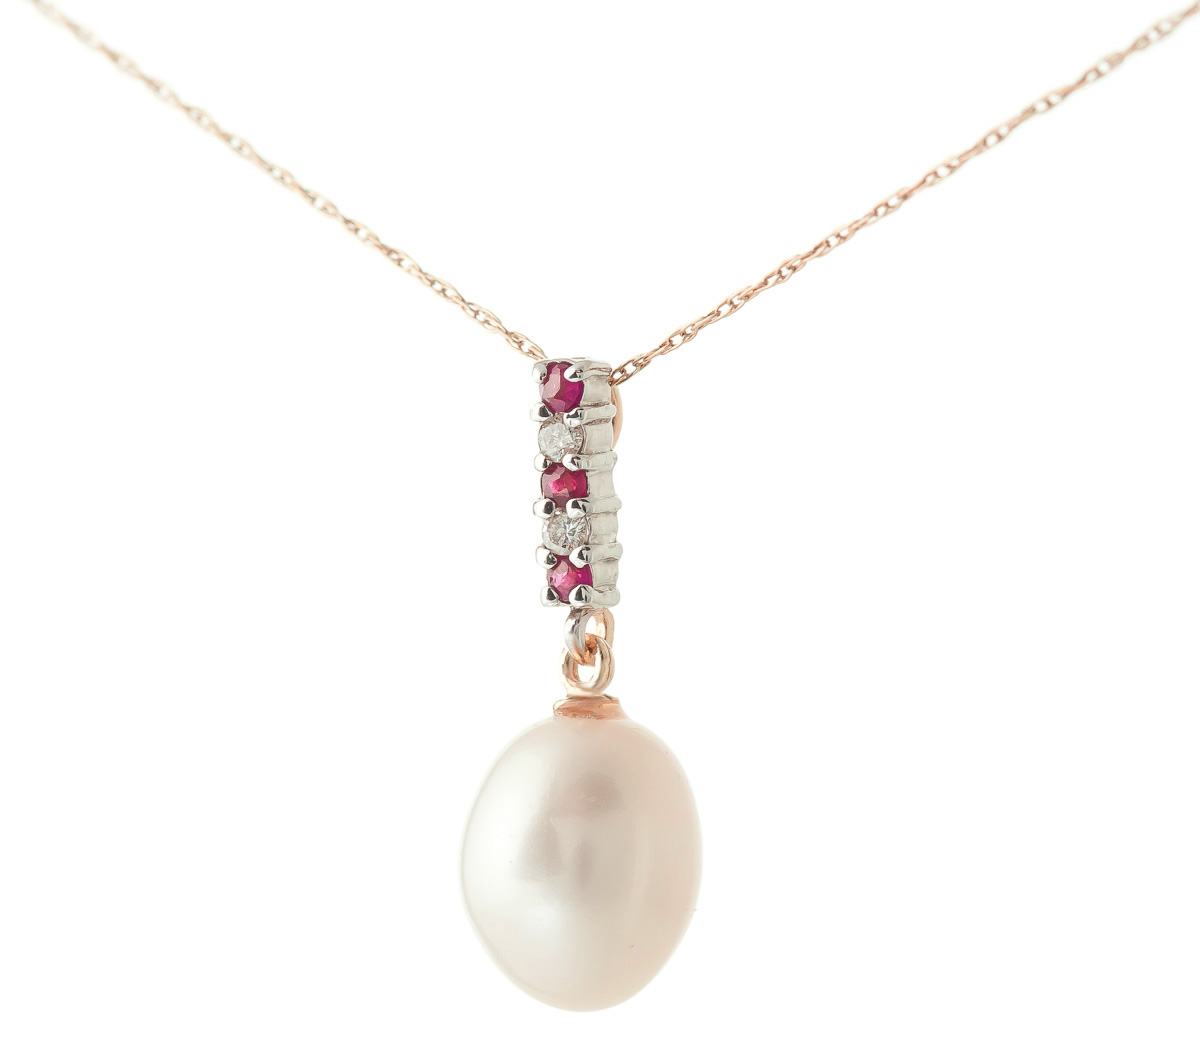 Pearl, Ruby and Diamond Pendant Necklace 4.12ctw in 9ct Rose Gold